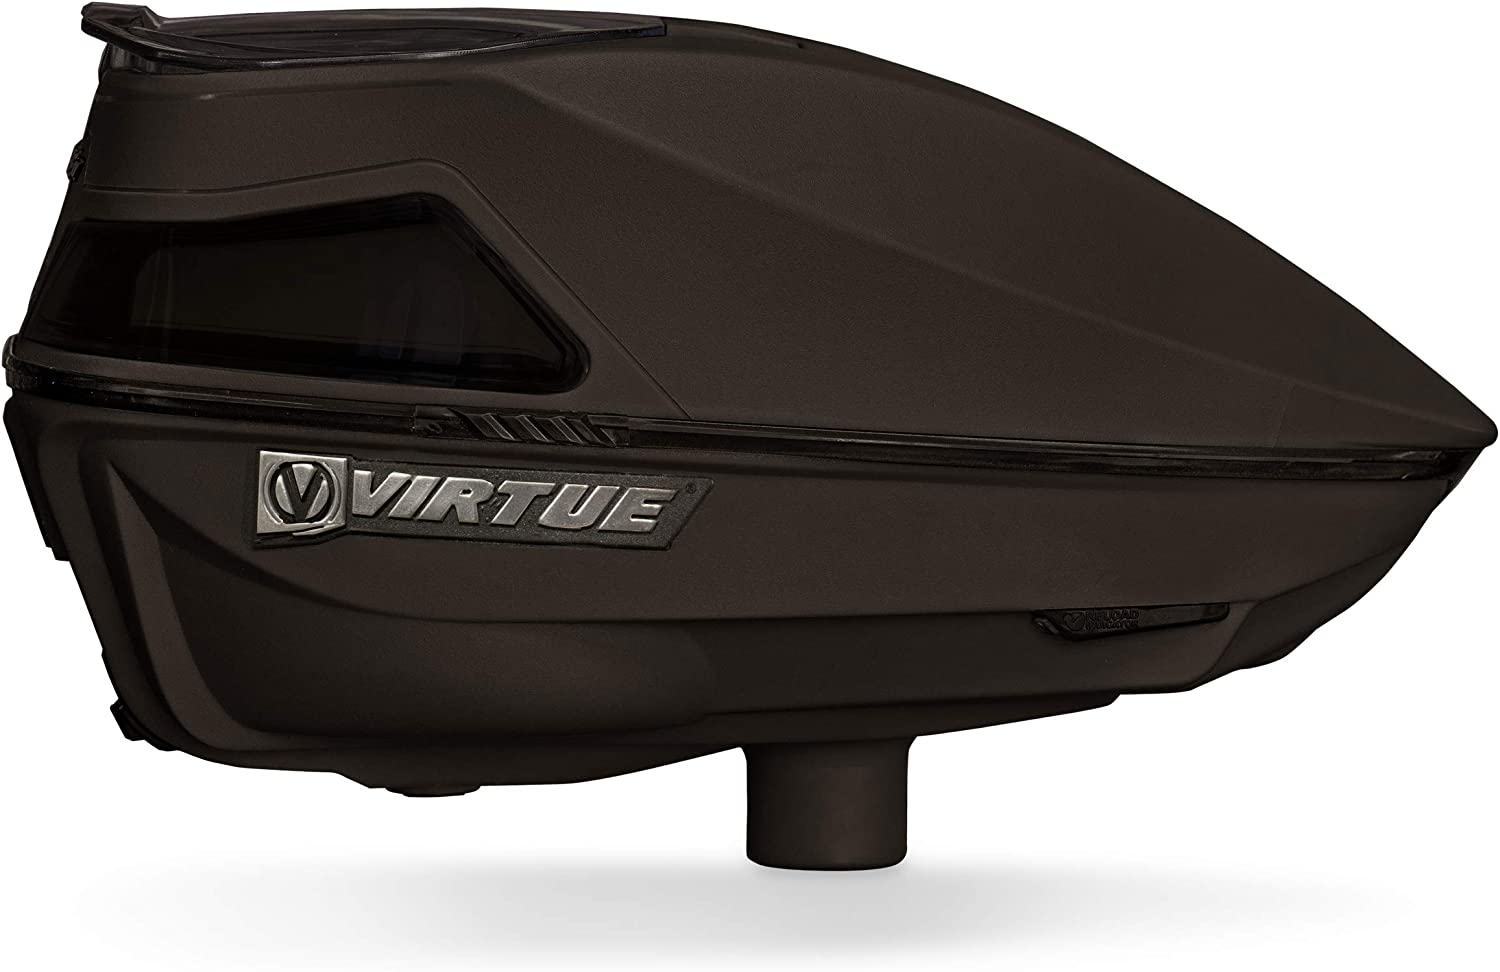 Virtue Spire IV Electronic Paintball Loaders/Hoppers